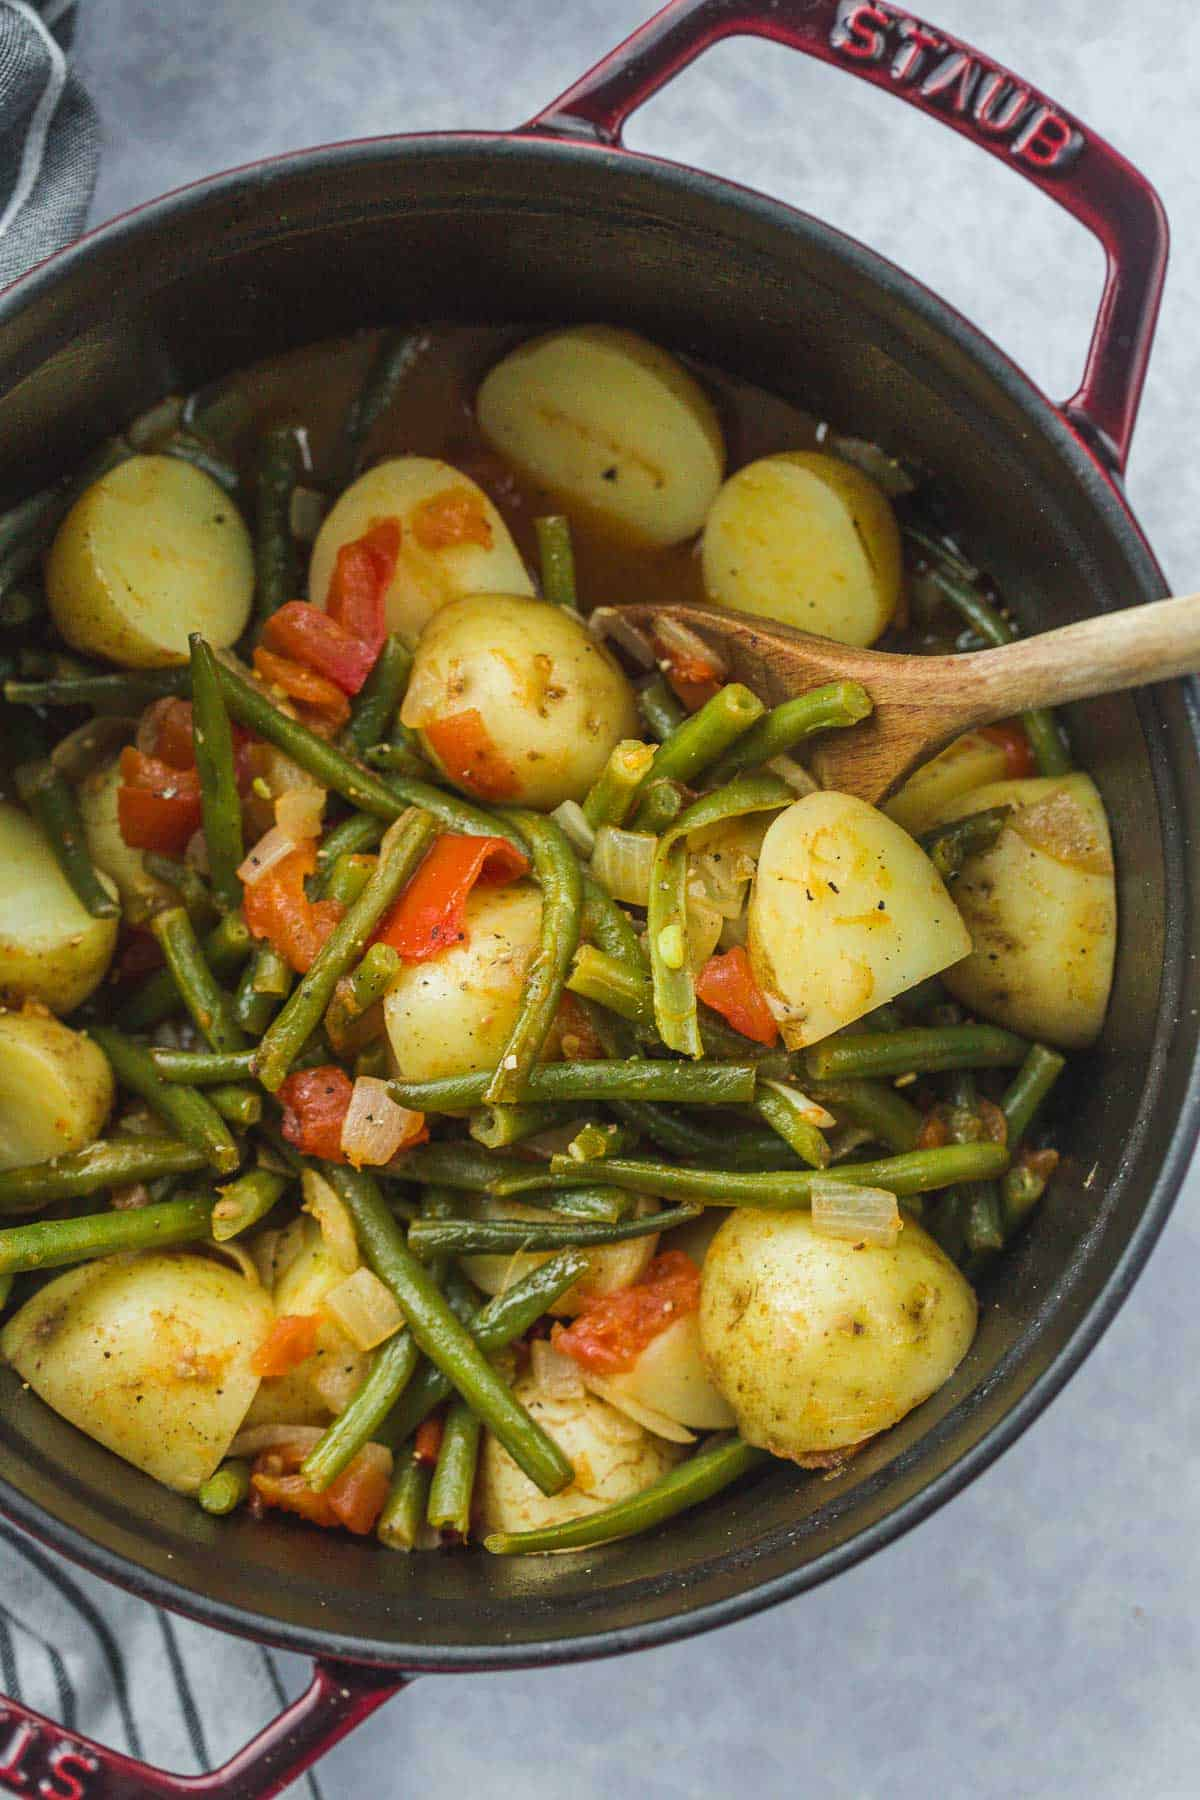 Cooked meal fasolakia in a Staub pot with a wooden spoon